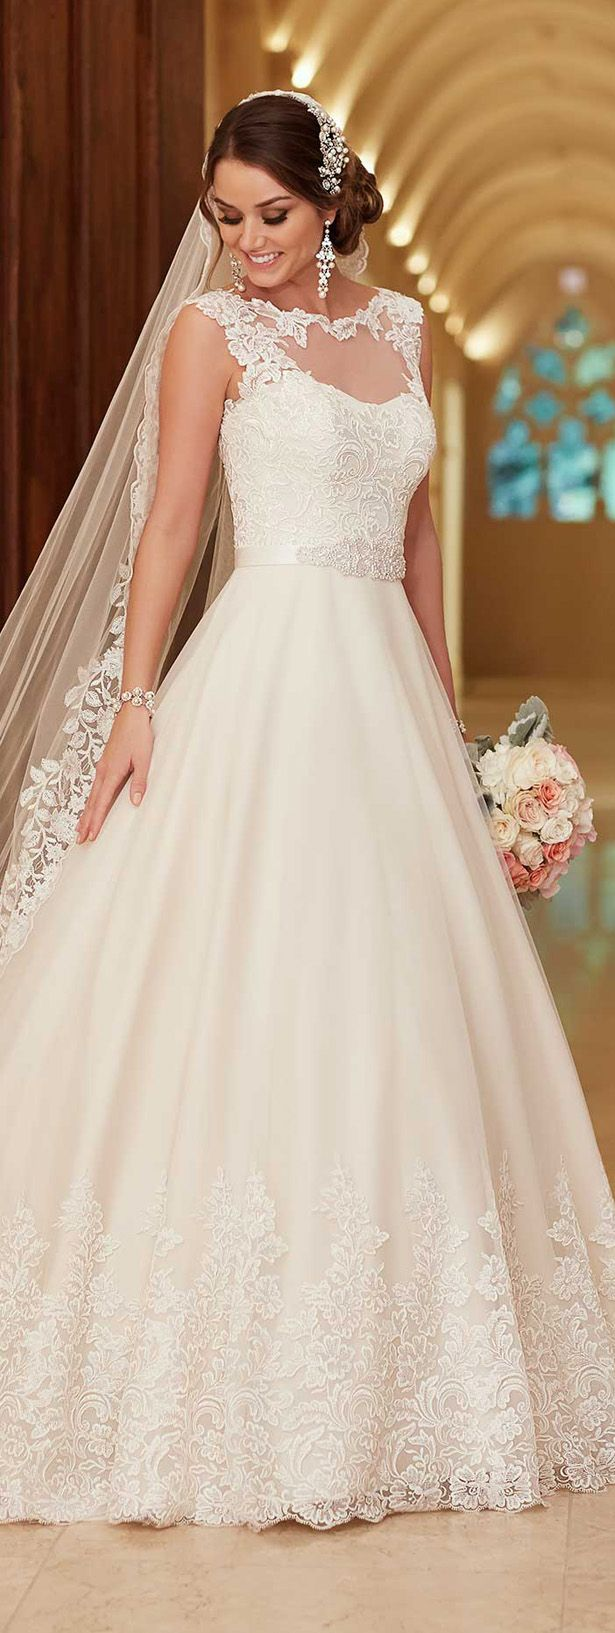 Top 10 Wedding Ideas and Color Combos from | Hochzeitskleider ...